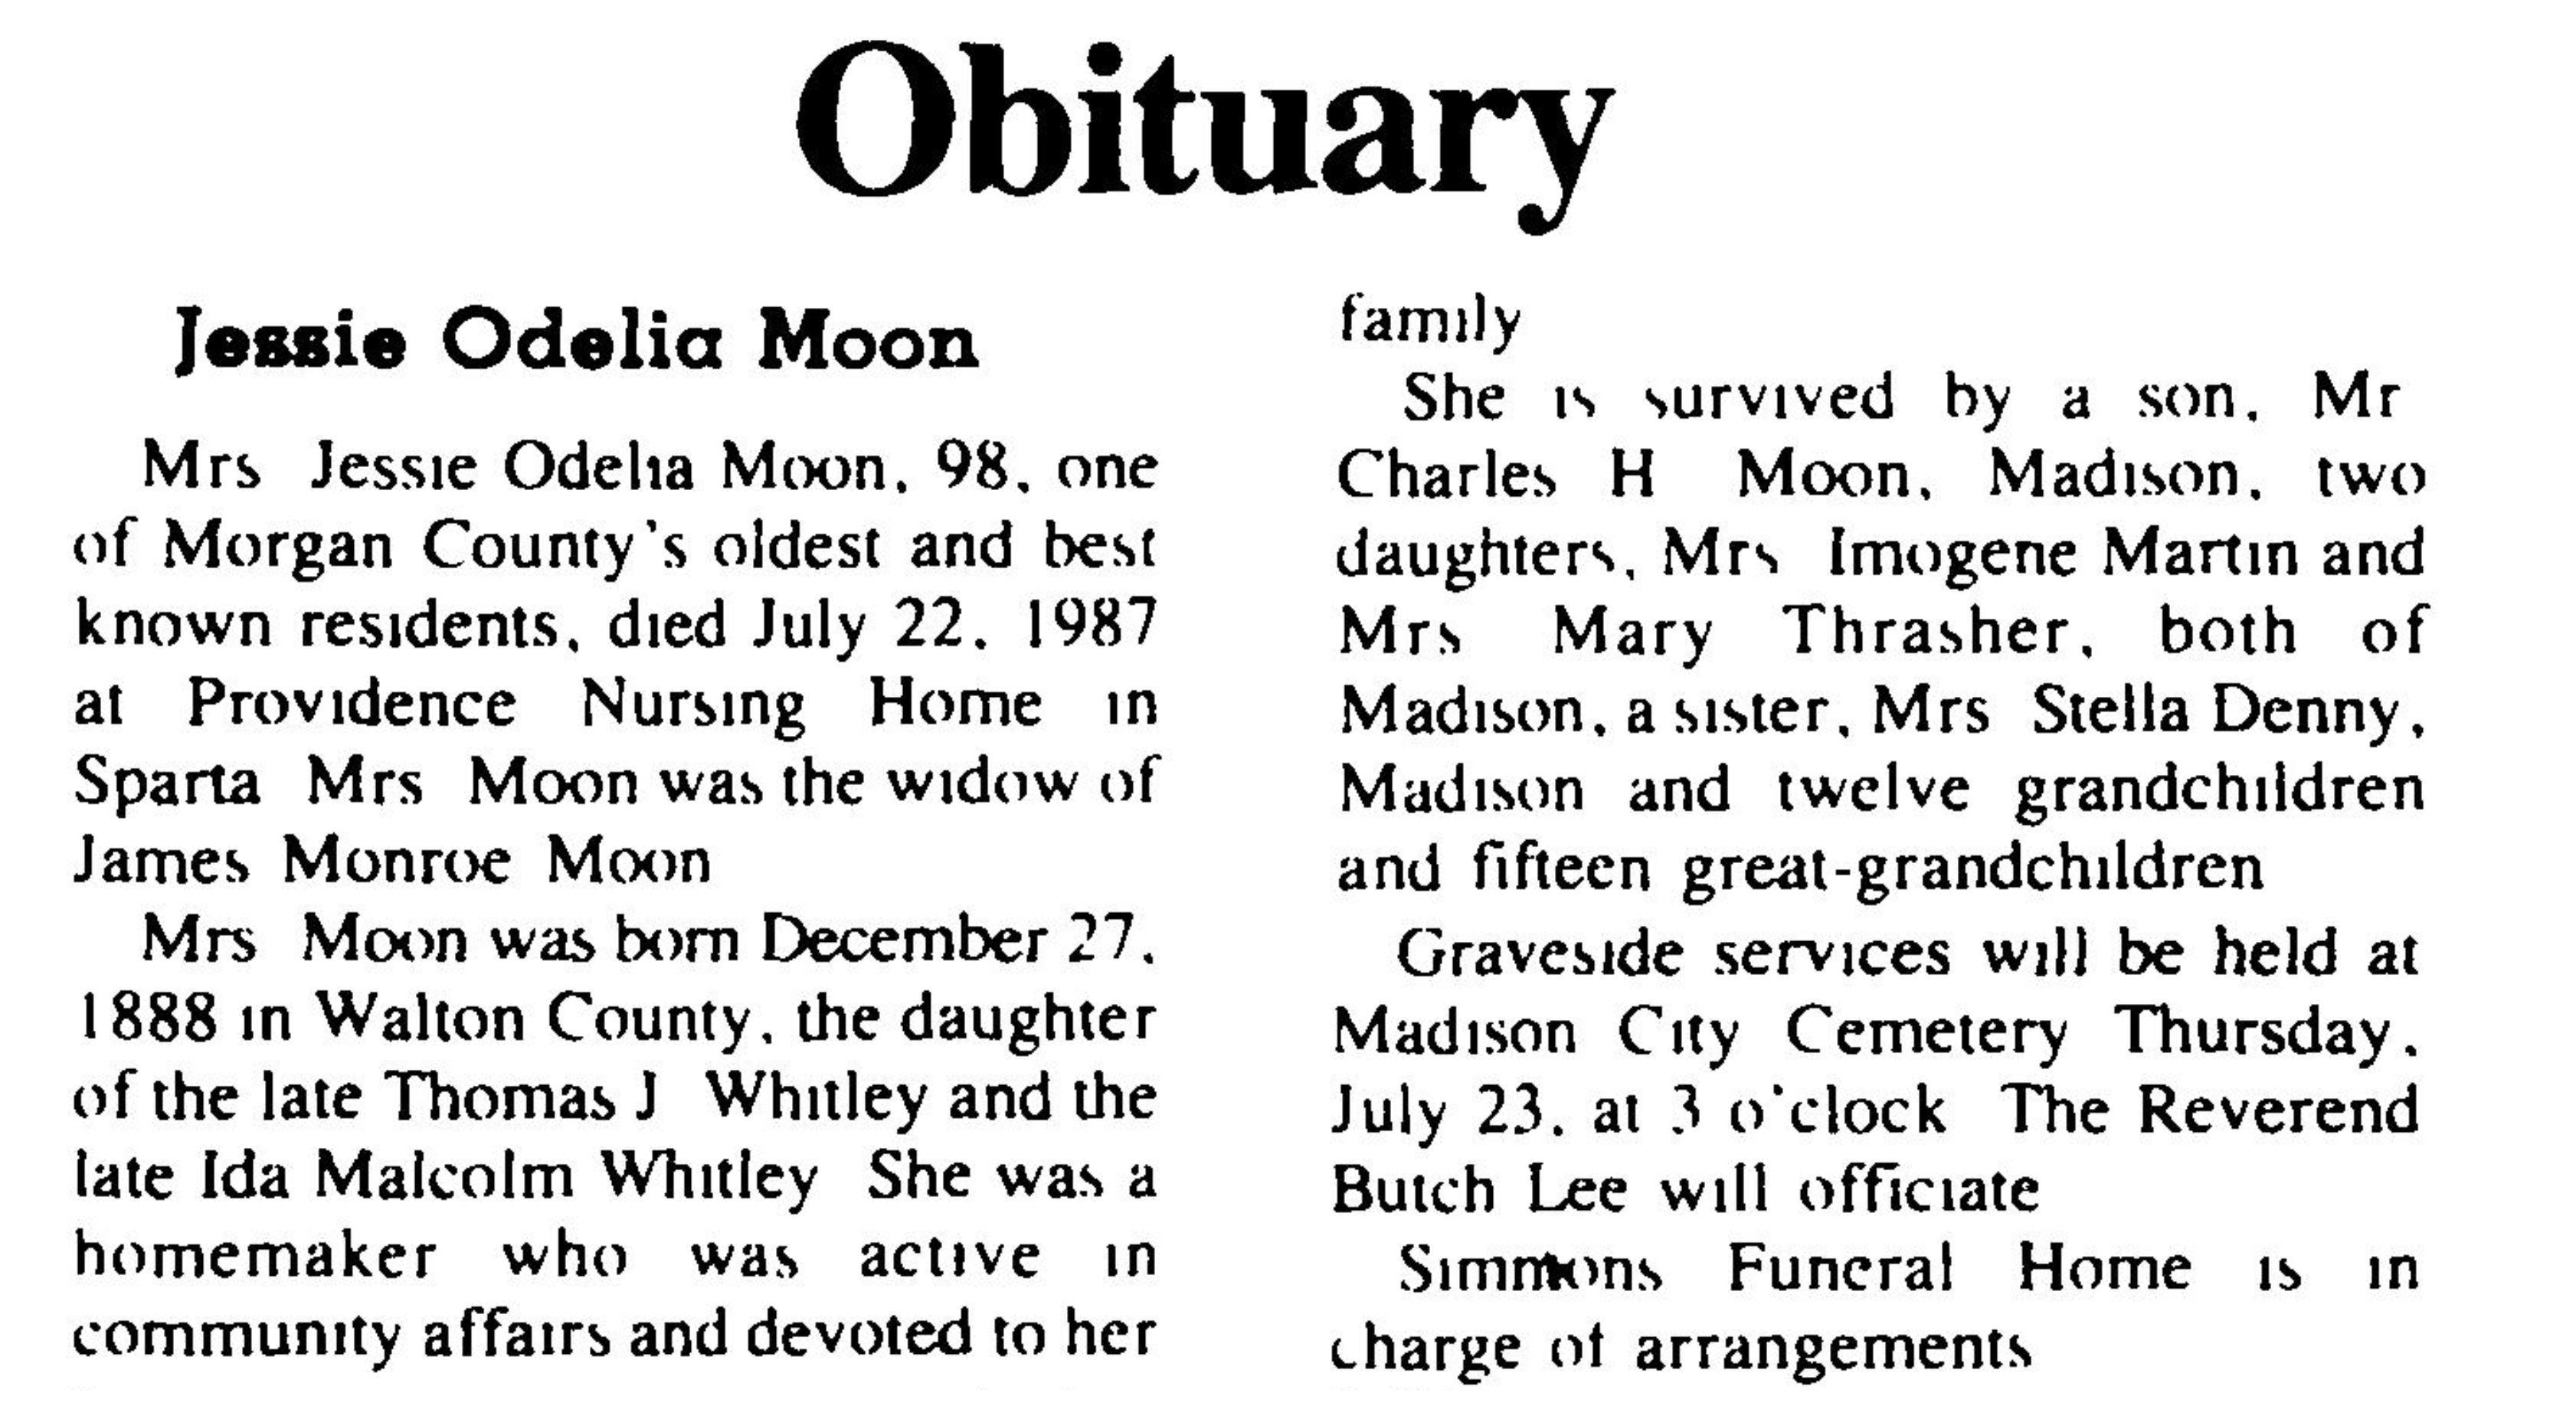 moon_jessieodelia_1987-obituary.jpeg